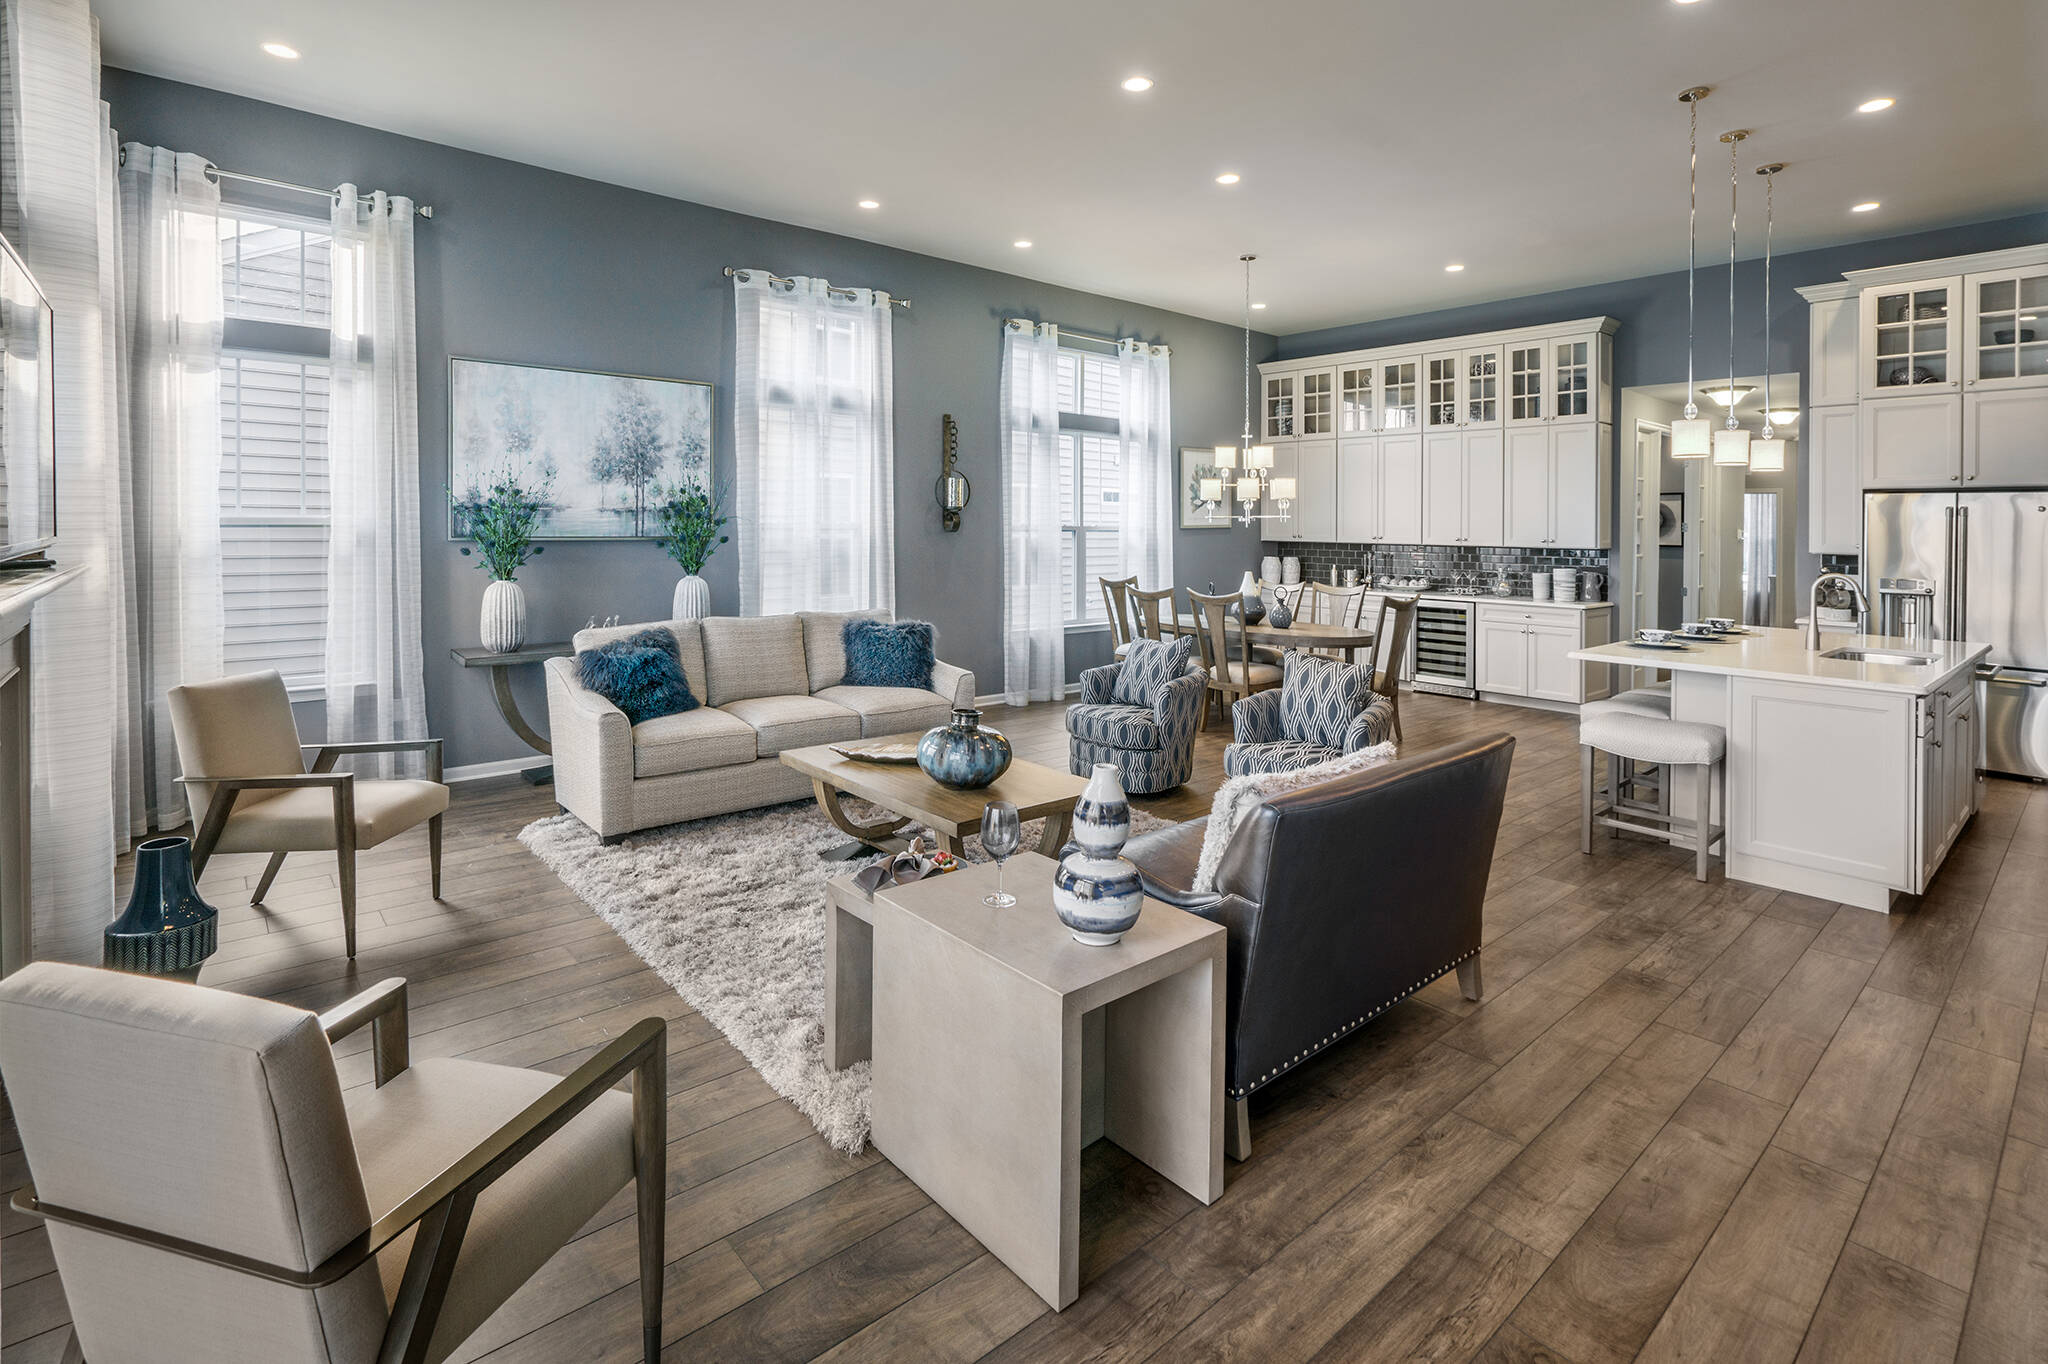 New Homes NJ Anegada II Great Room with Kitchen